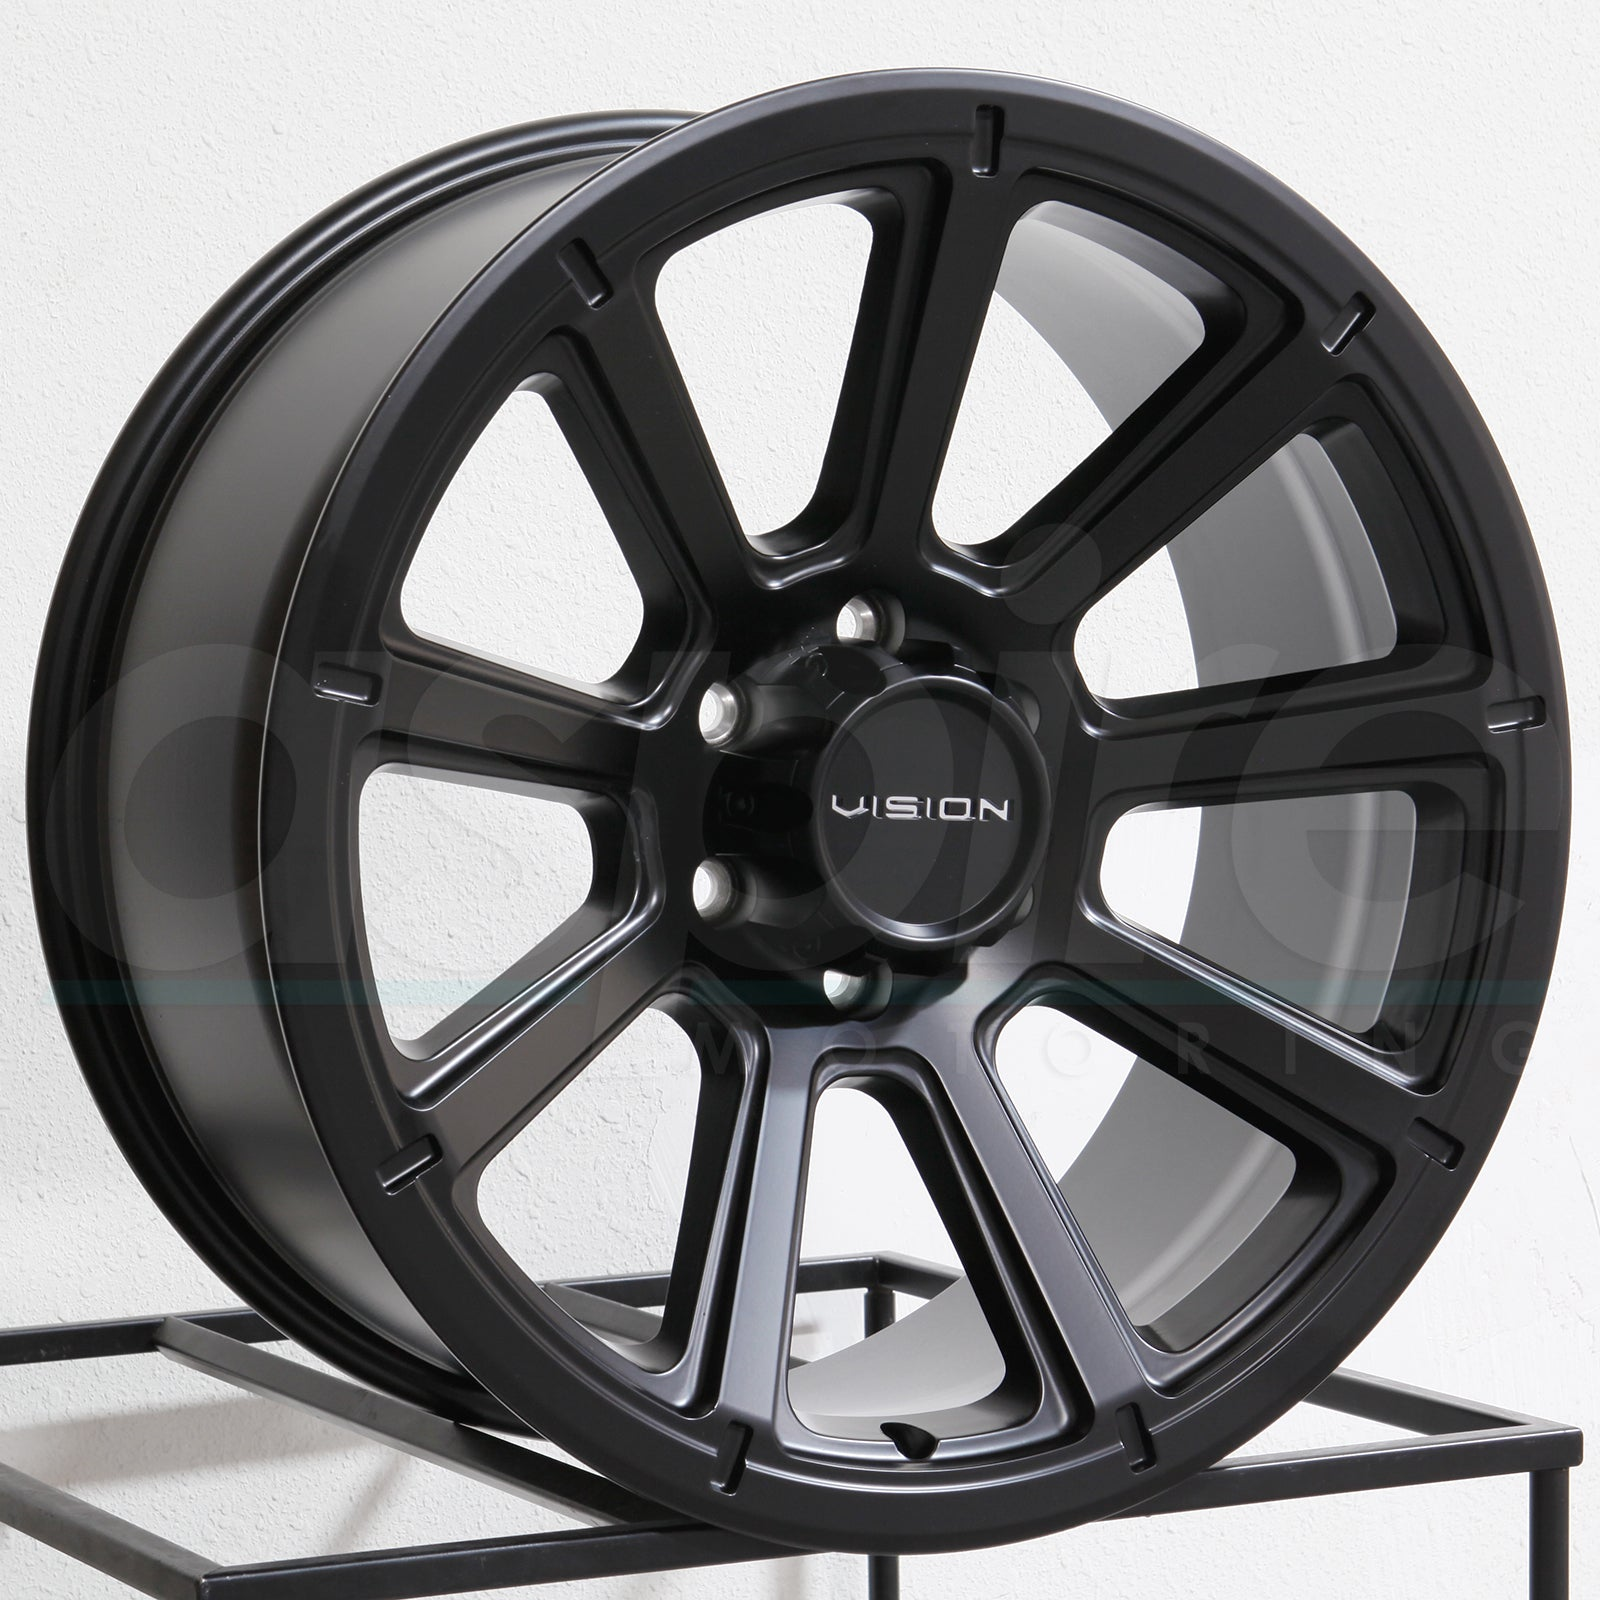 Vision Wheels 353 Turbine Matte Black